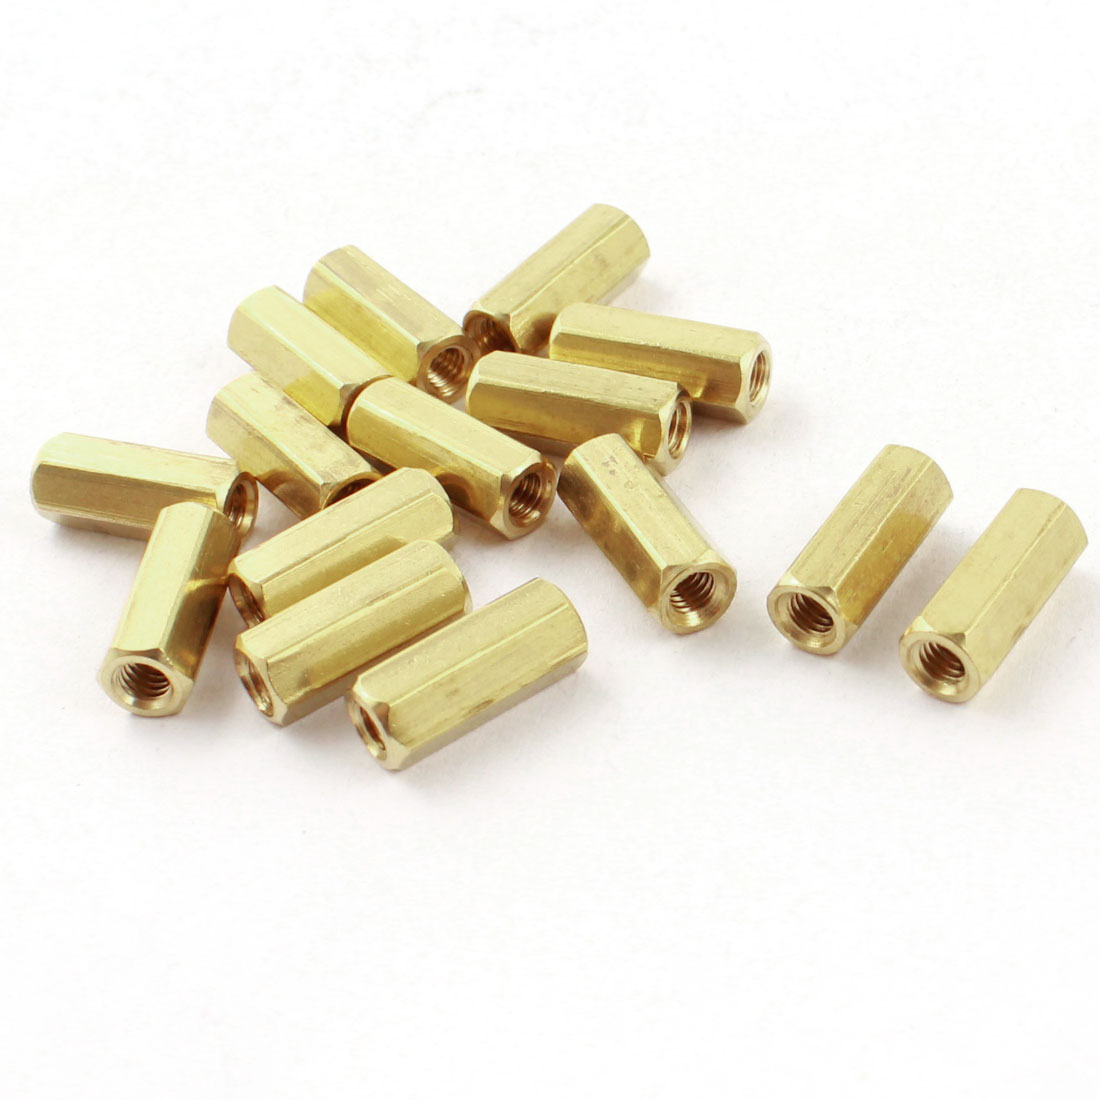 15 Pcs M3 x 12mm Female Thread Dual Ends Gold Tone Brass Pillar PCB Standoff Hexagonal Nut Spacer